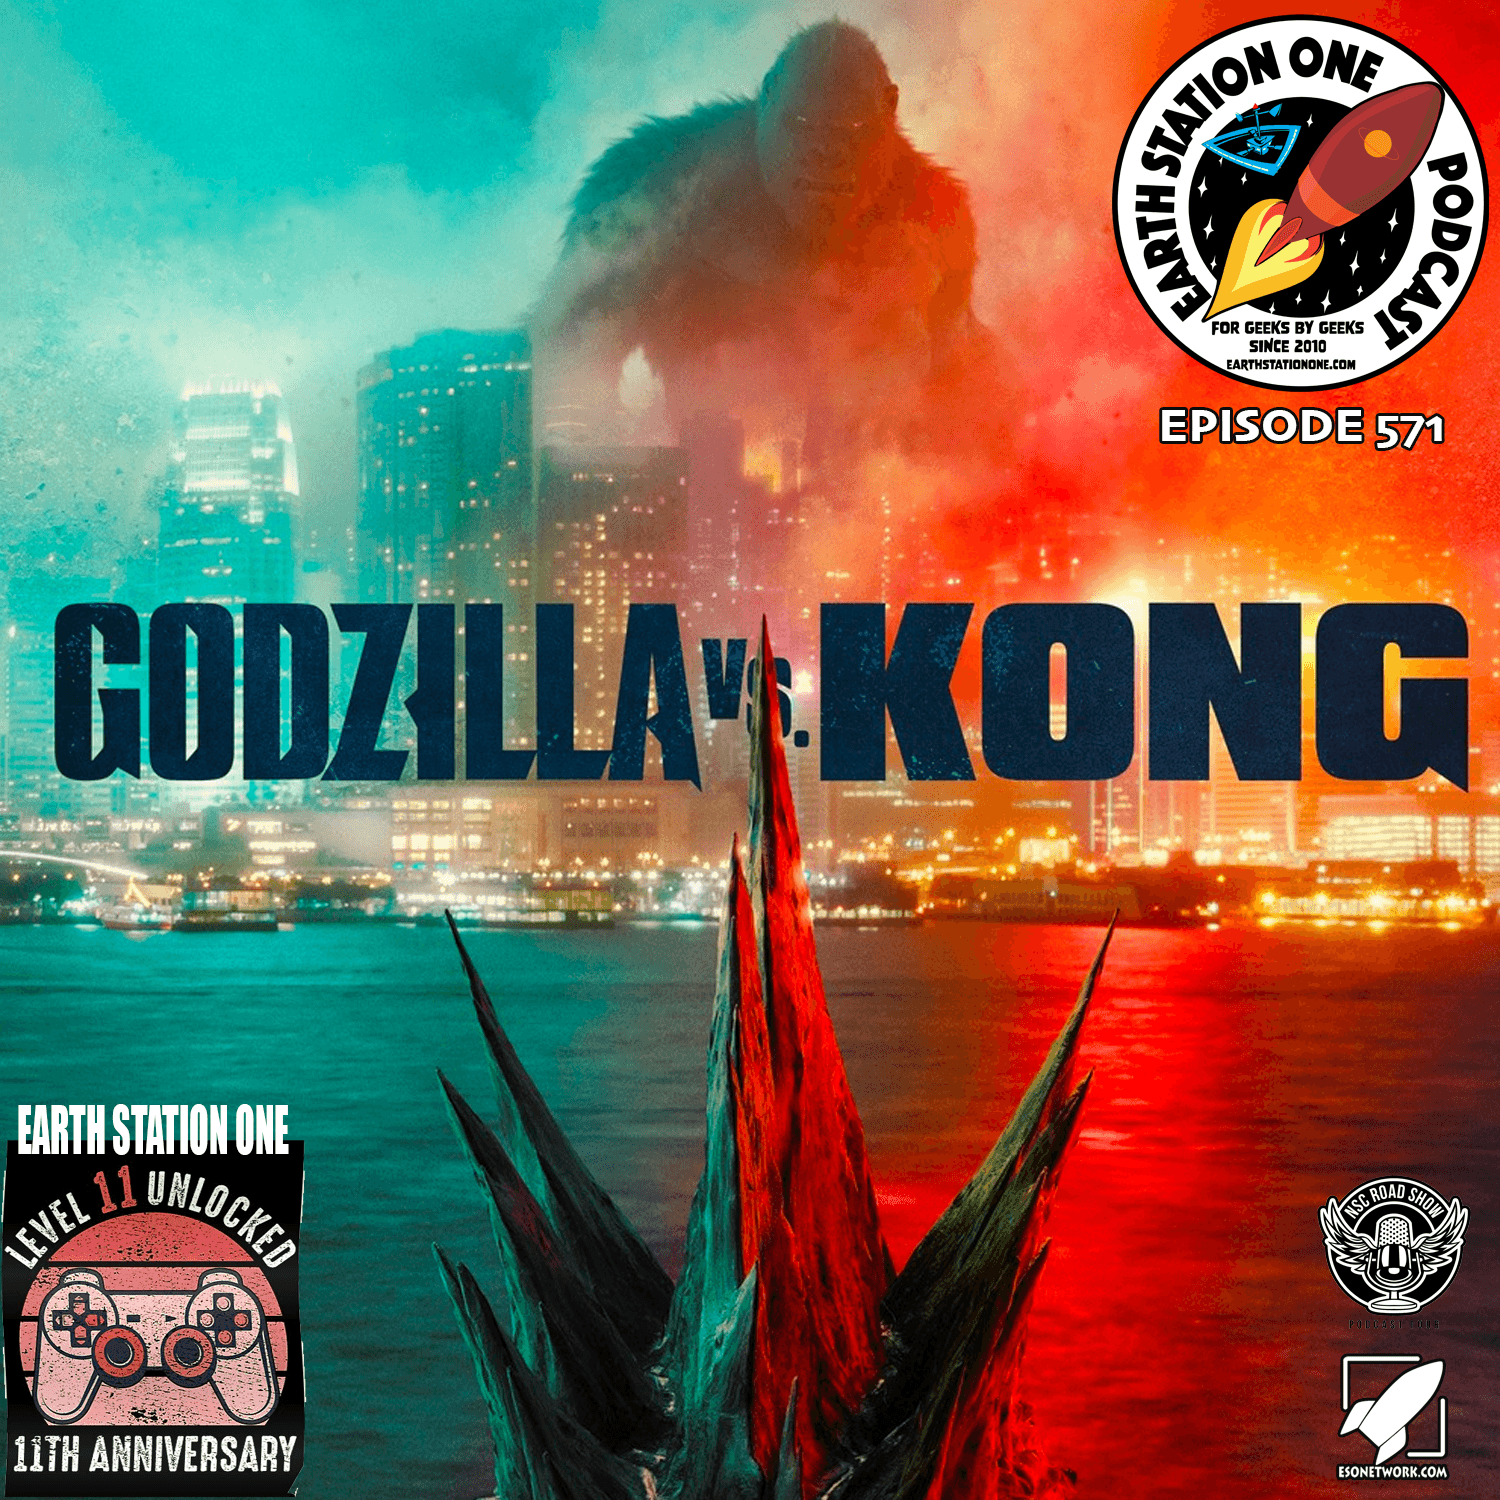 Earth Station One Ep 571 - Godzilla vs Kong